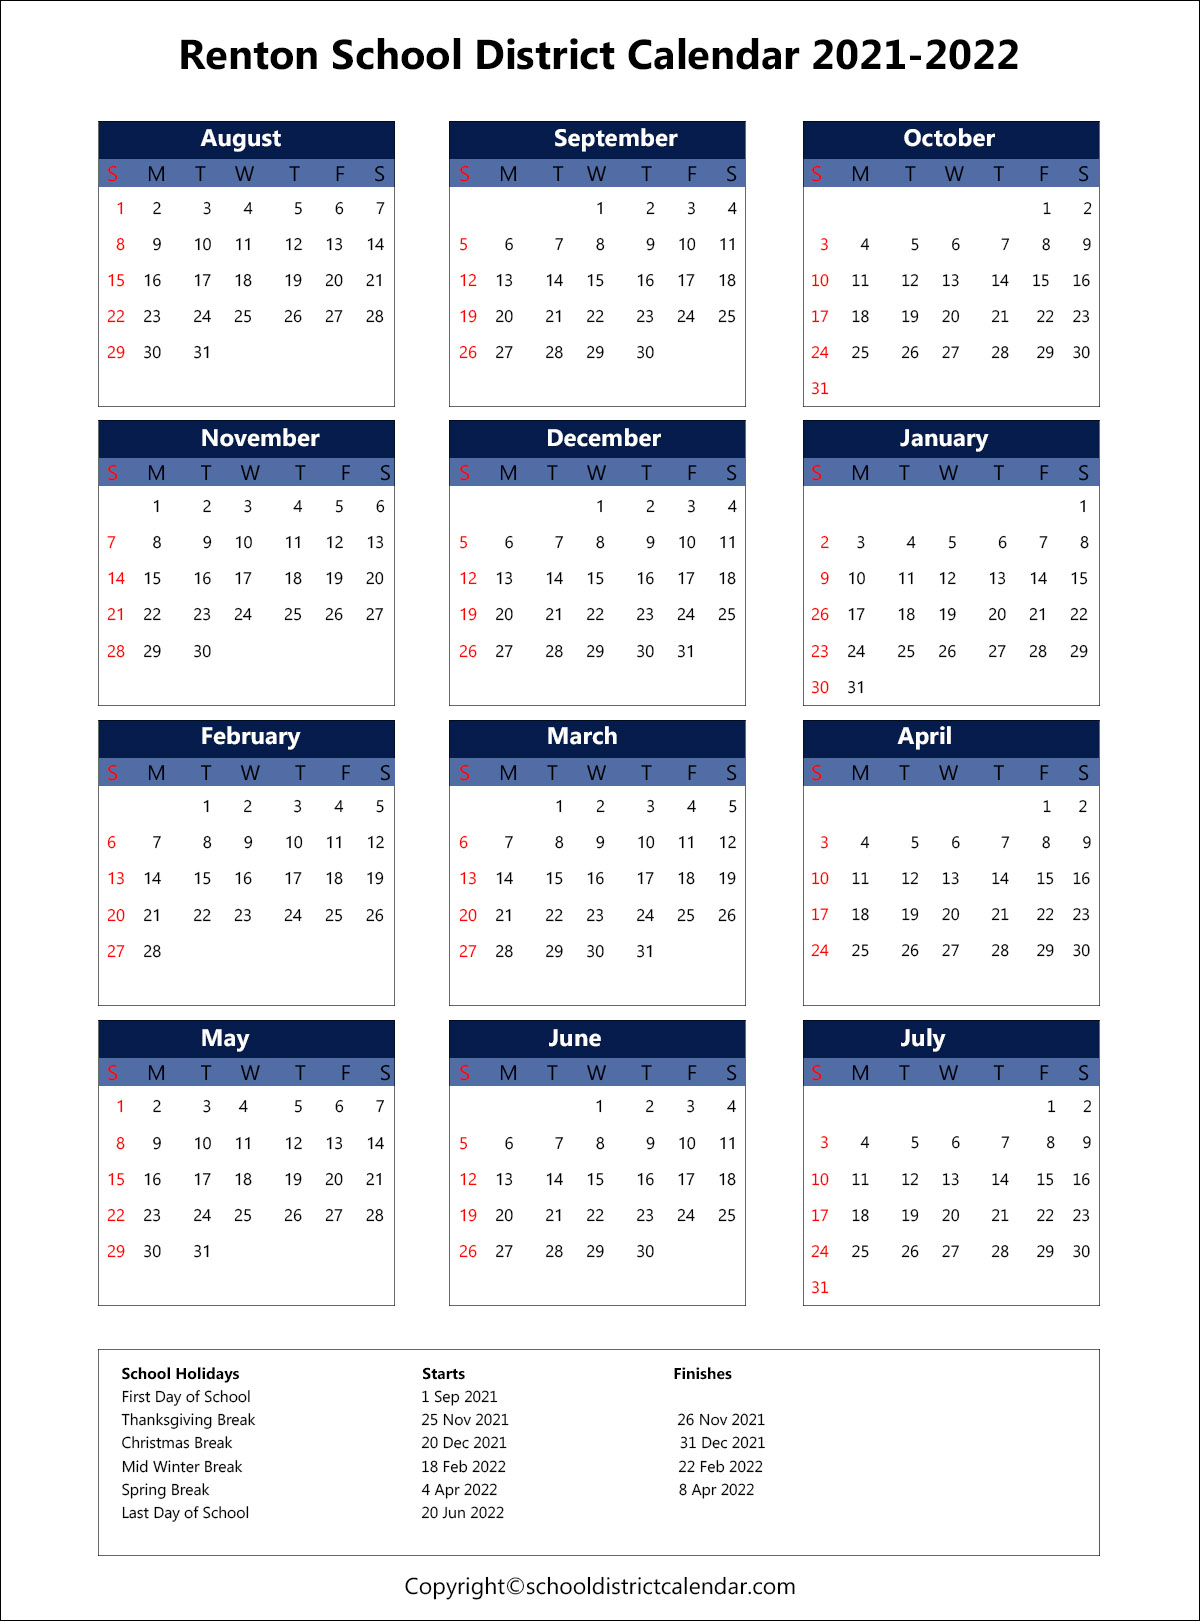 Renton School District Calendar 2021